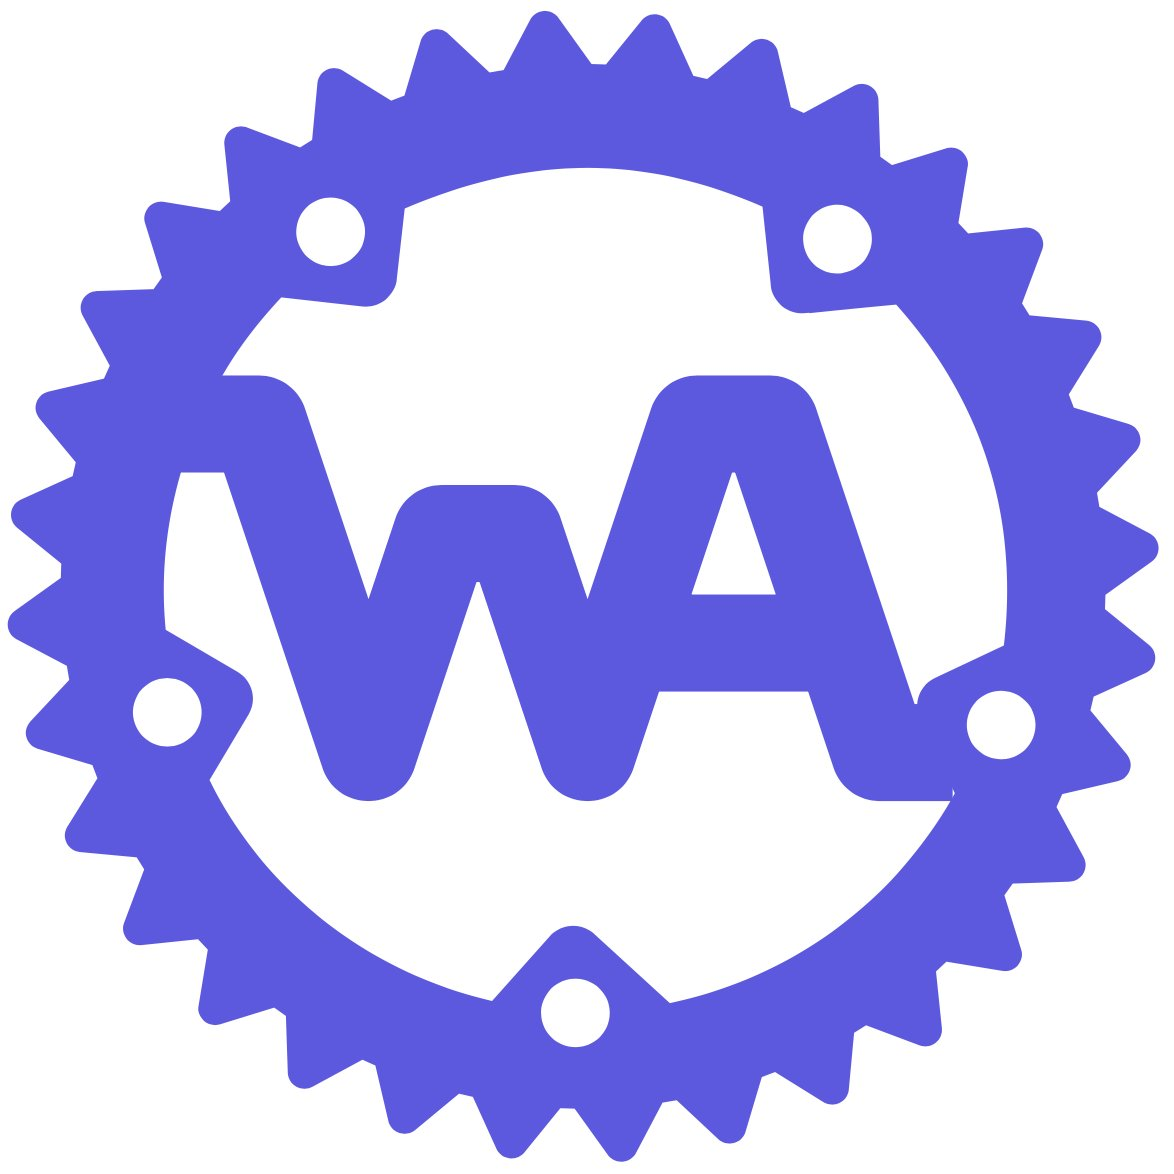 Rust and WebAssembly on Twitter: